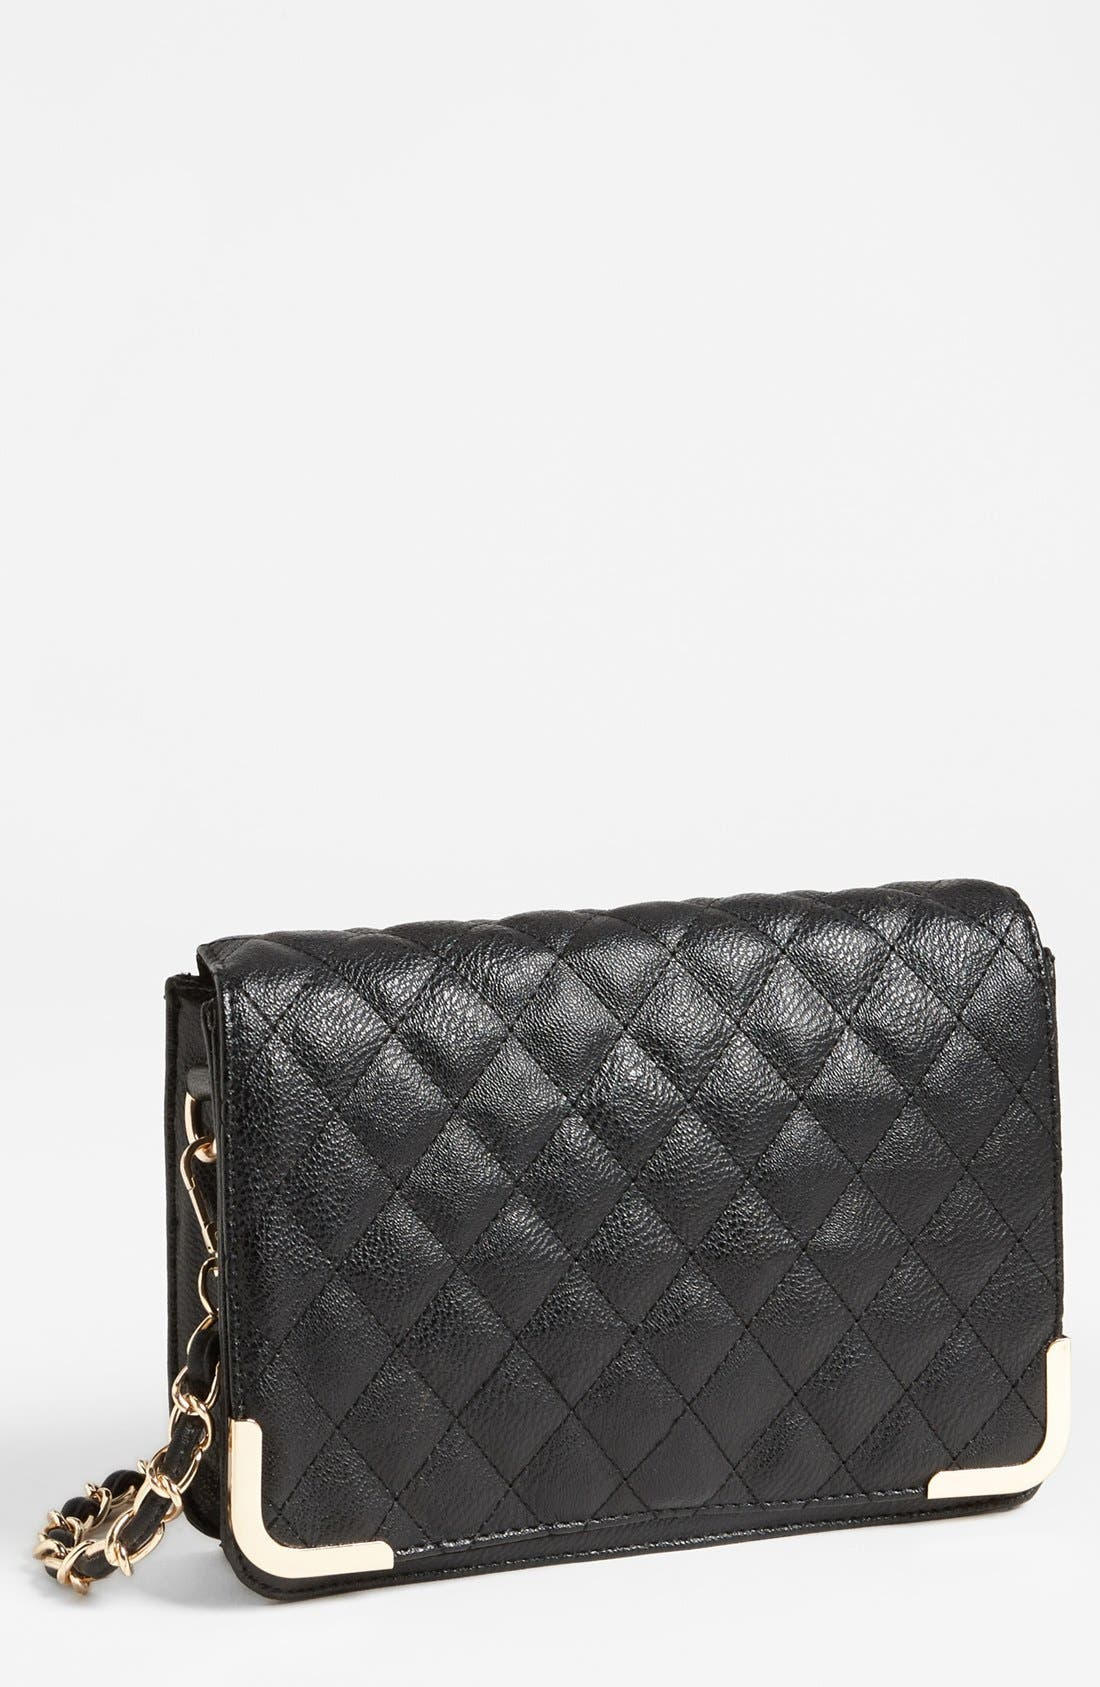 Main Image - NB Handbags Quilted Crossbody Bag